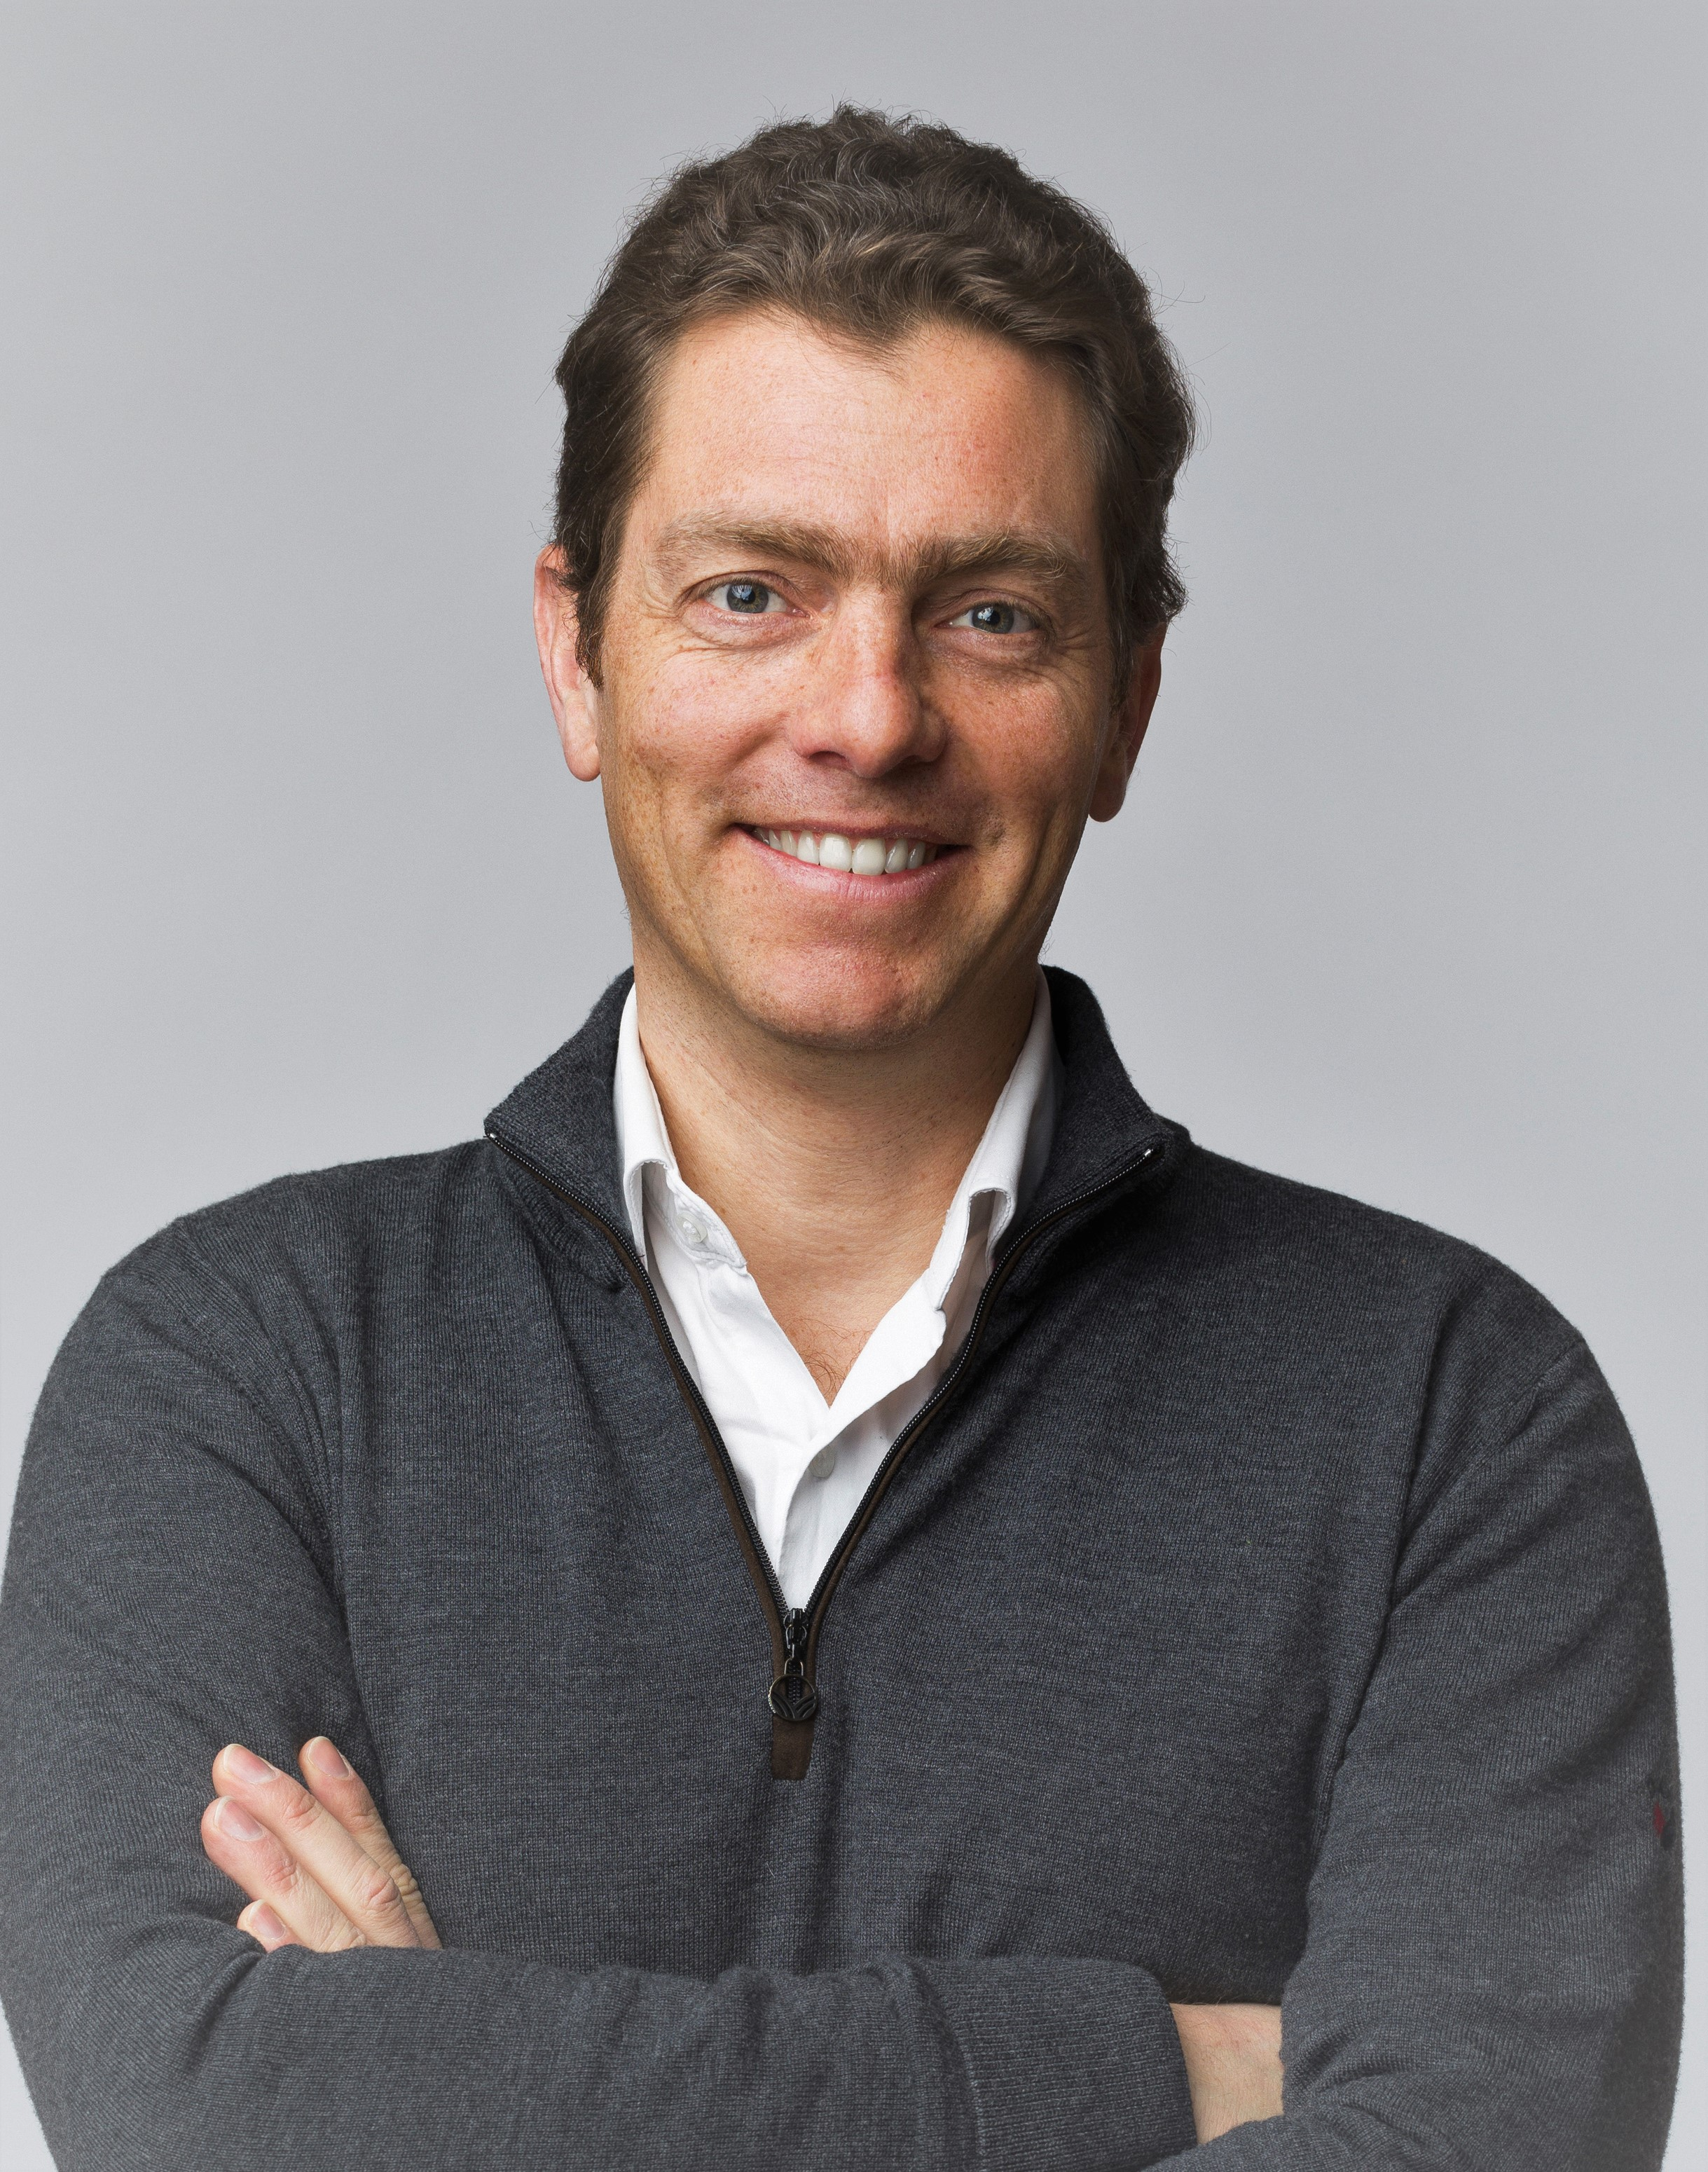 BOLLÉ BRANDS ANNOUNCES THE RECRUITMENT OF FRANCOIS BENABEN AS PRESIDENT OF THE GROUP'S SPORT AND LUXURY DIVISION